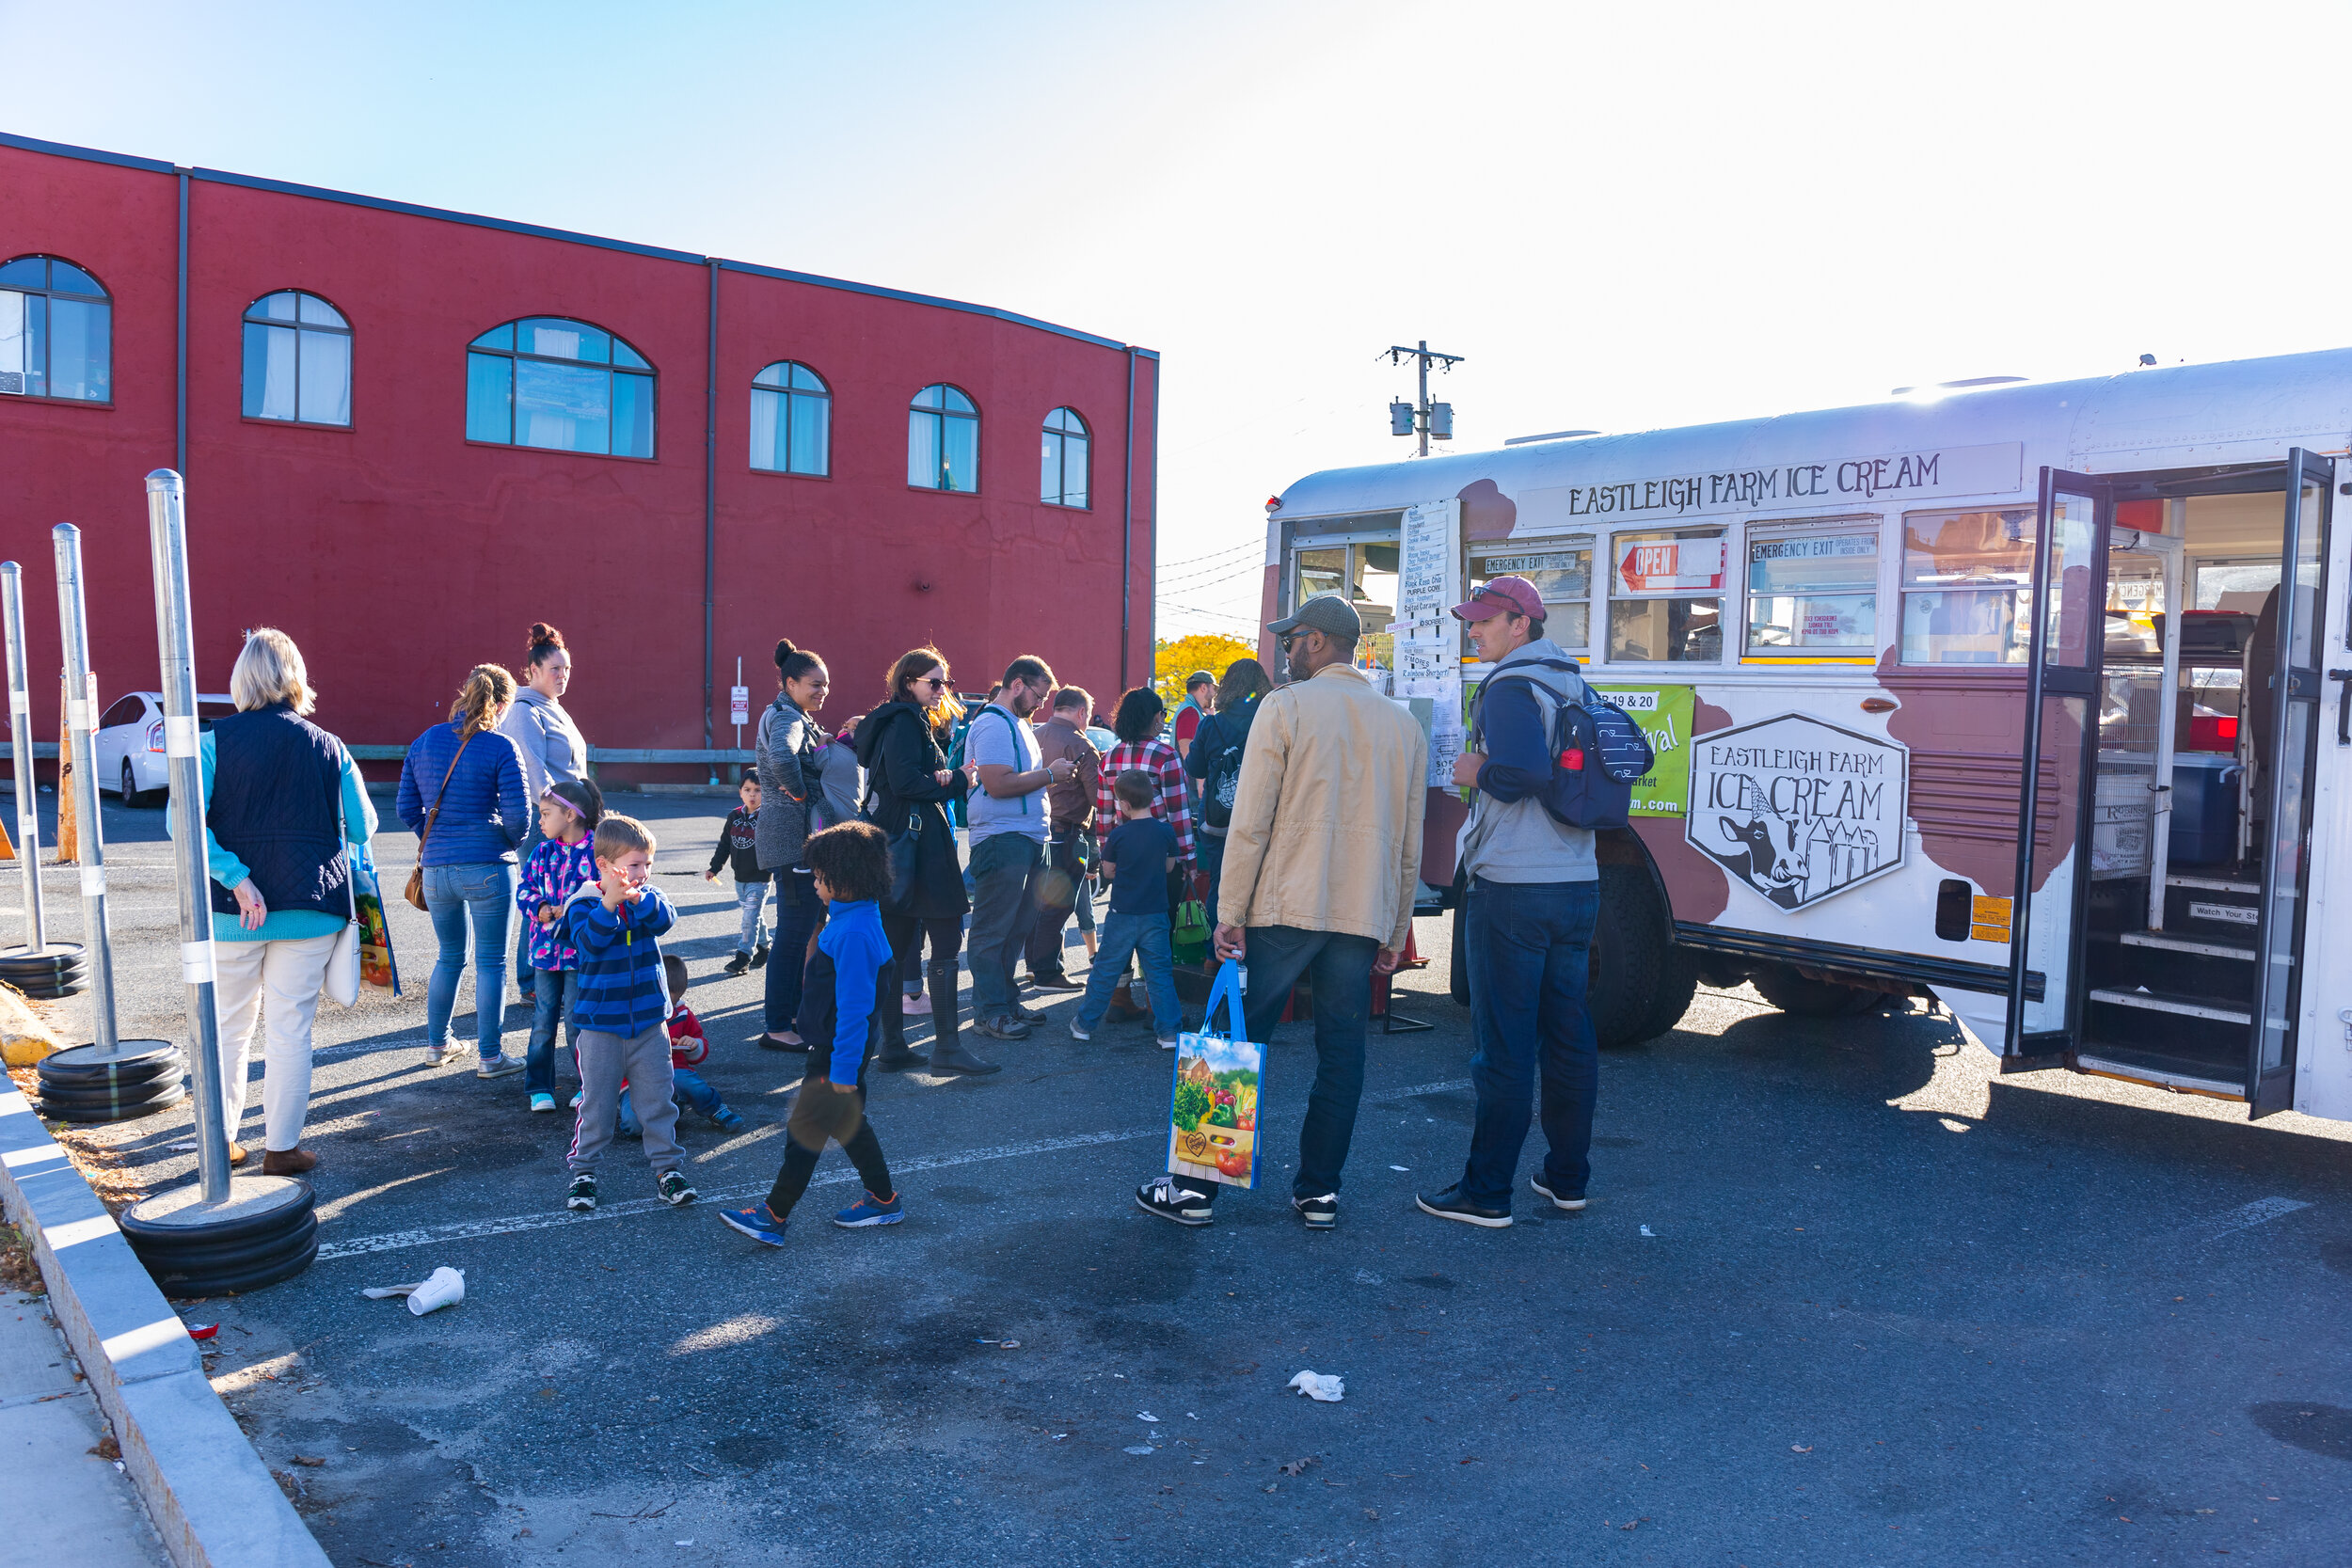 A little Eastleigh Farm Moo Bus ice cream frenzy in Burkis Square! Thanks to the DFI Volunteers who helped clean-up afterward! Photo credit Itala Keller.